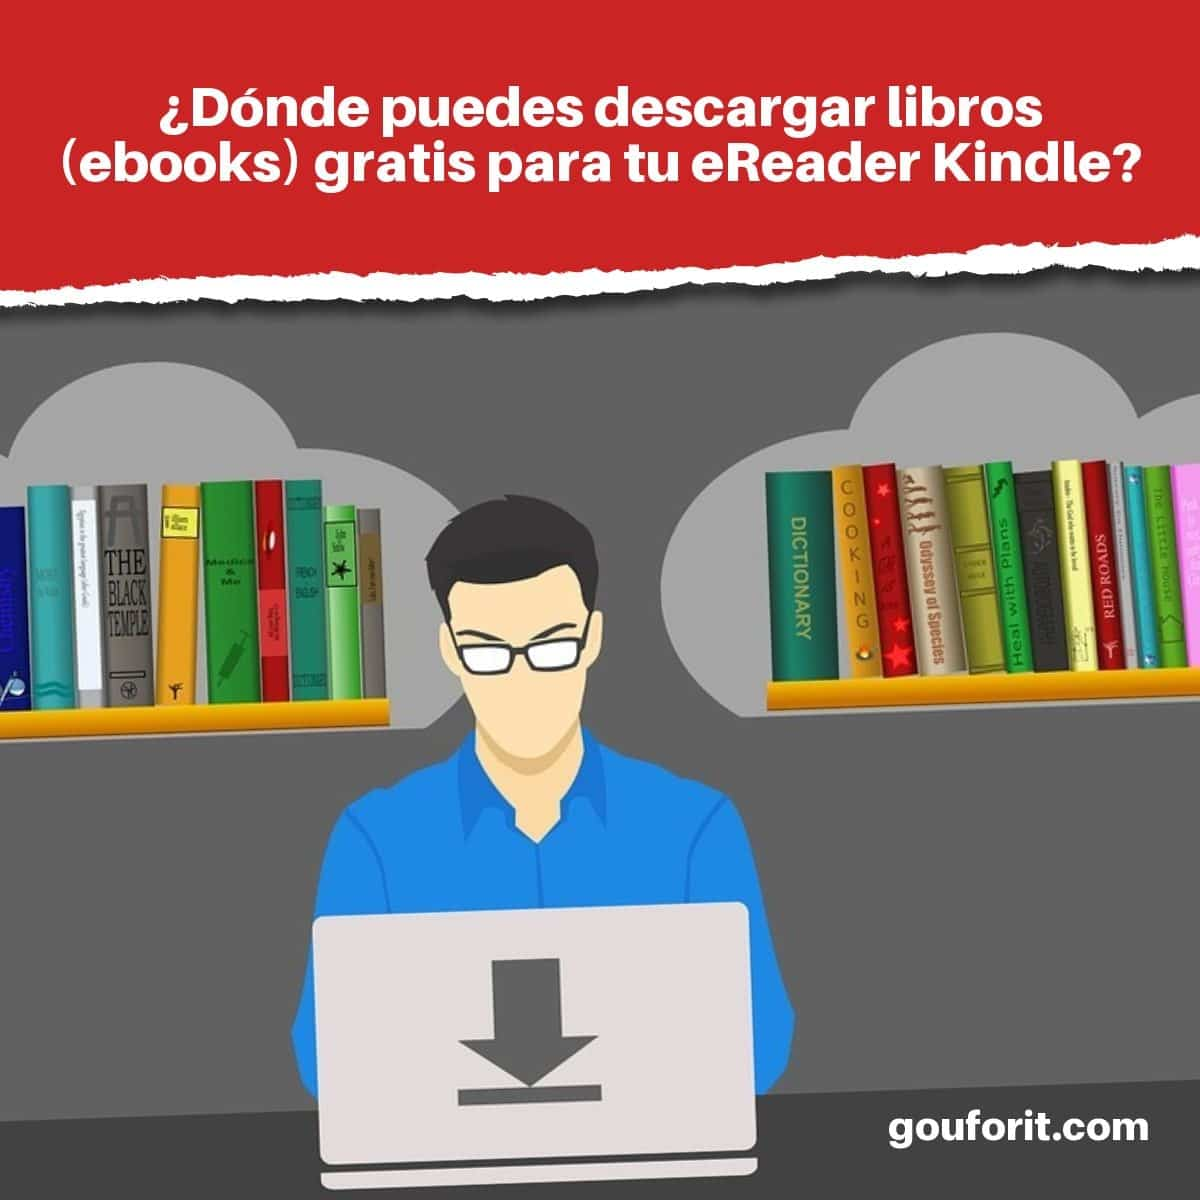 Libro Electronico Black Friday 10 Sitios Web Para Bajar Libros Ebooks Gratis Para Tu Ereader Kindle